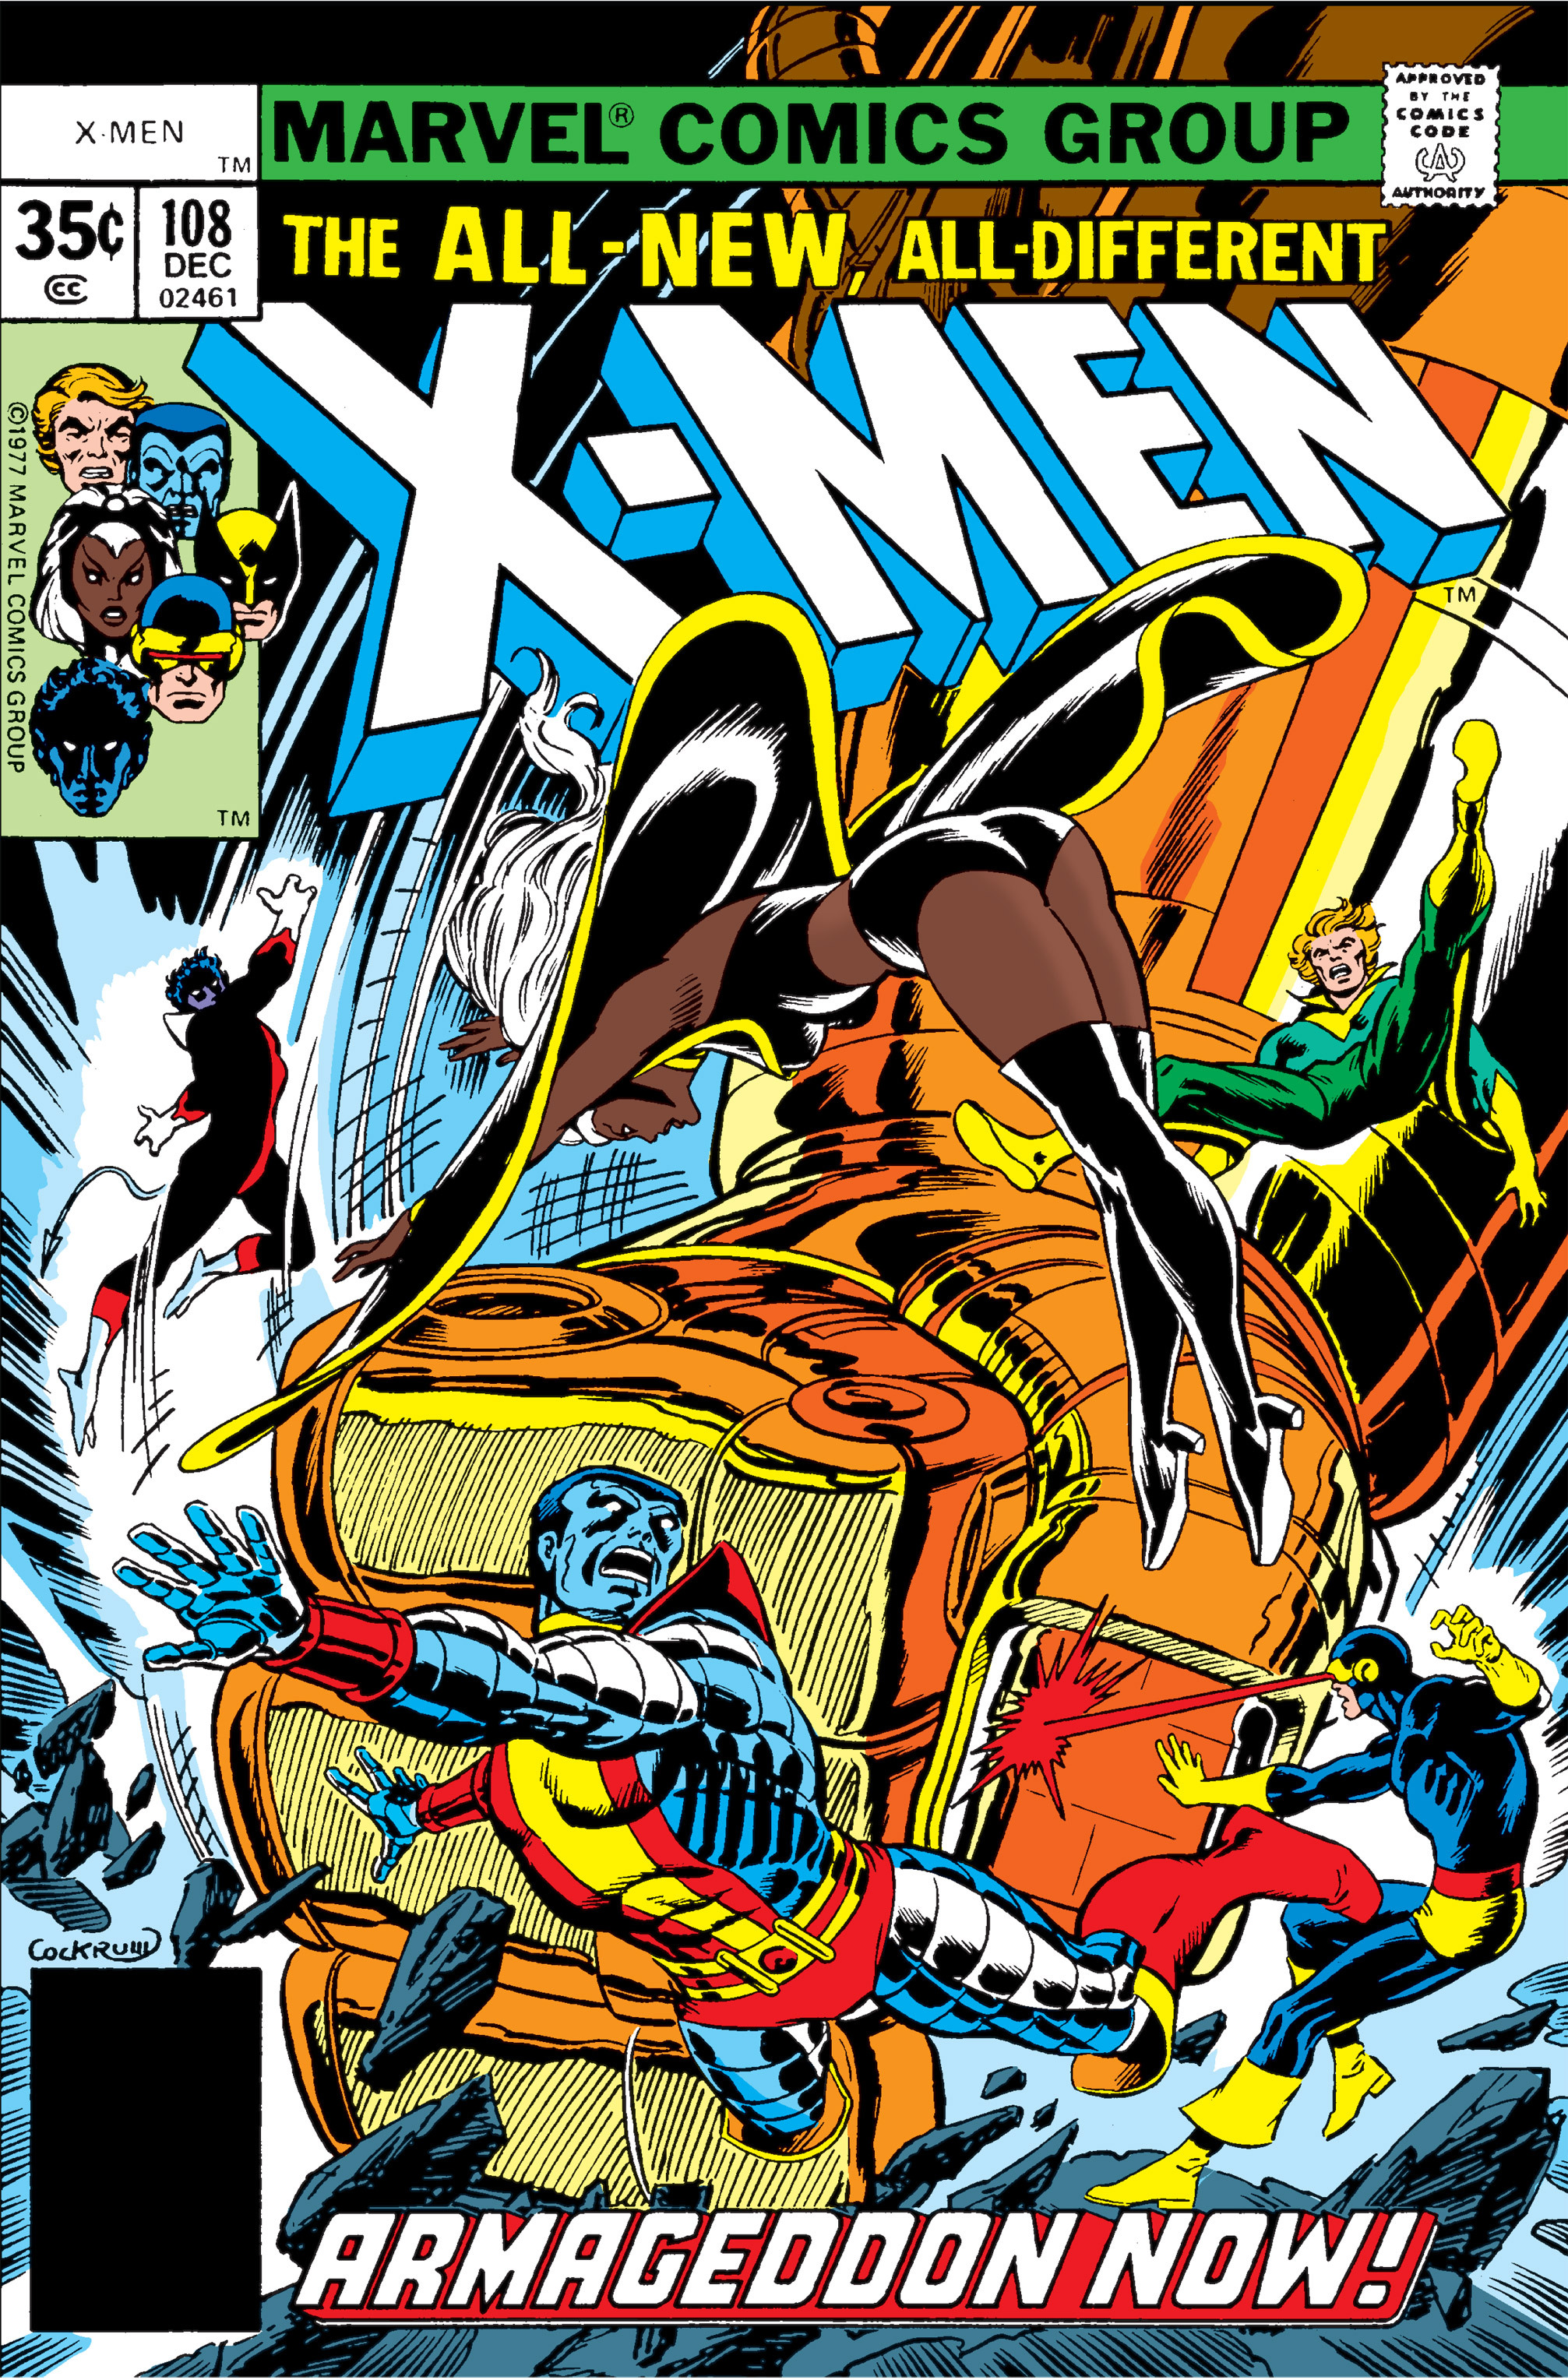 Read online Uncanny X-Men (1963) comic -  Issue #108 - 1